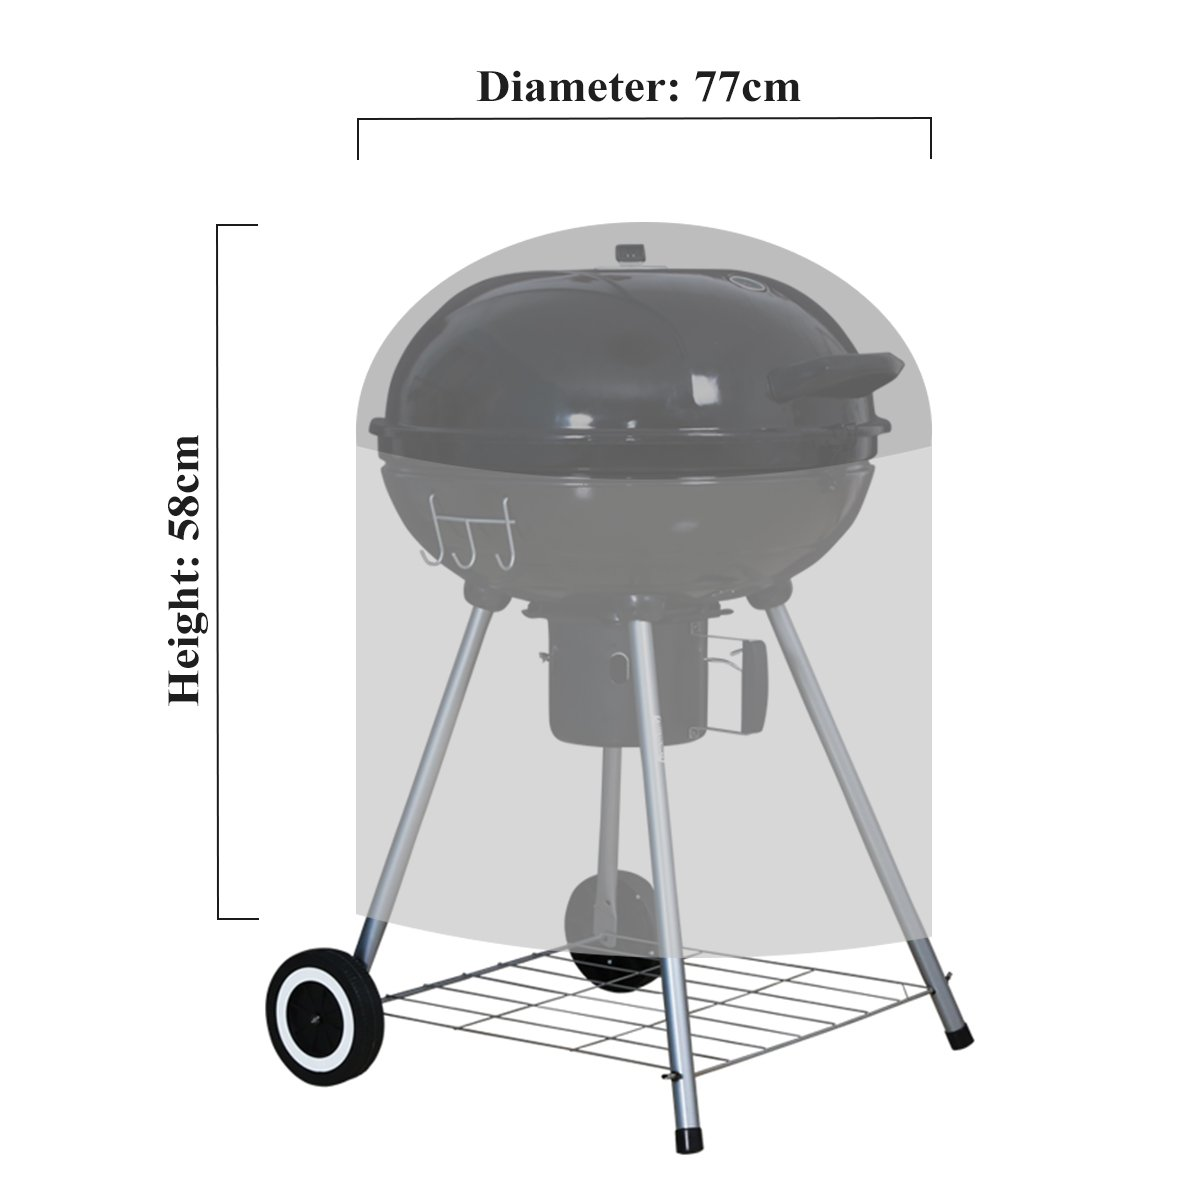 Ankier Waterproof Polyester Round BBQ Grill Cover with Drawstring Cord Large 30 Inch Barbecue Cover Black